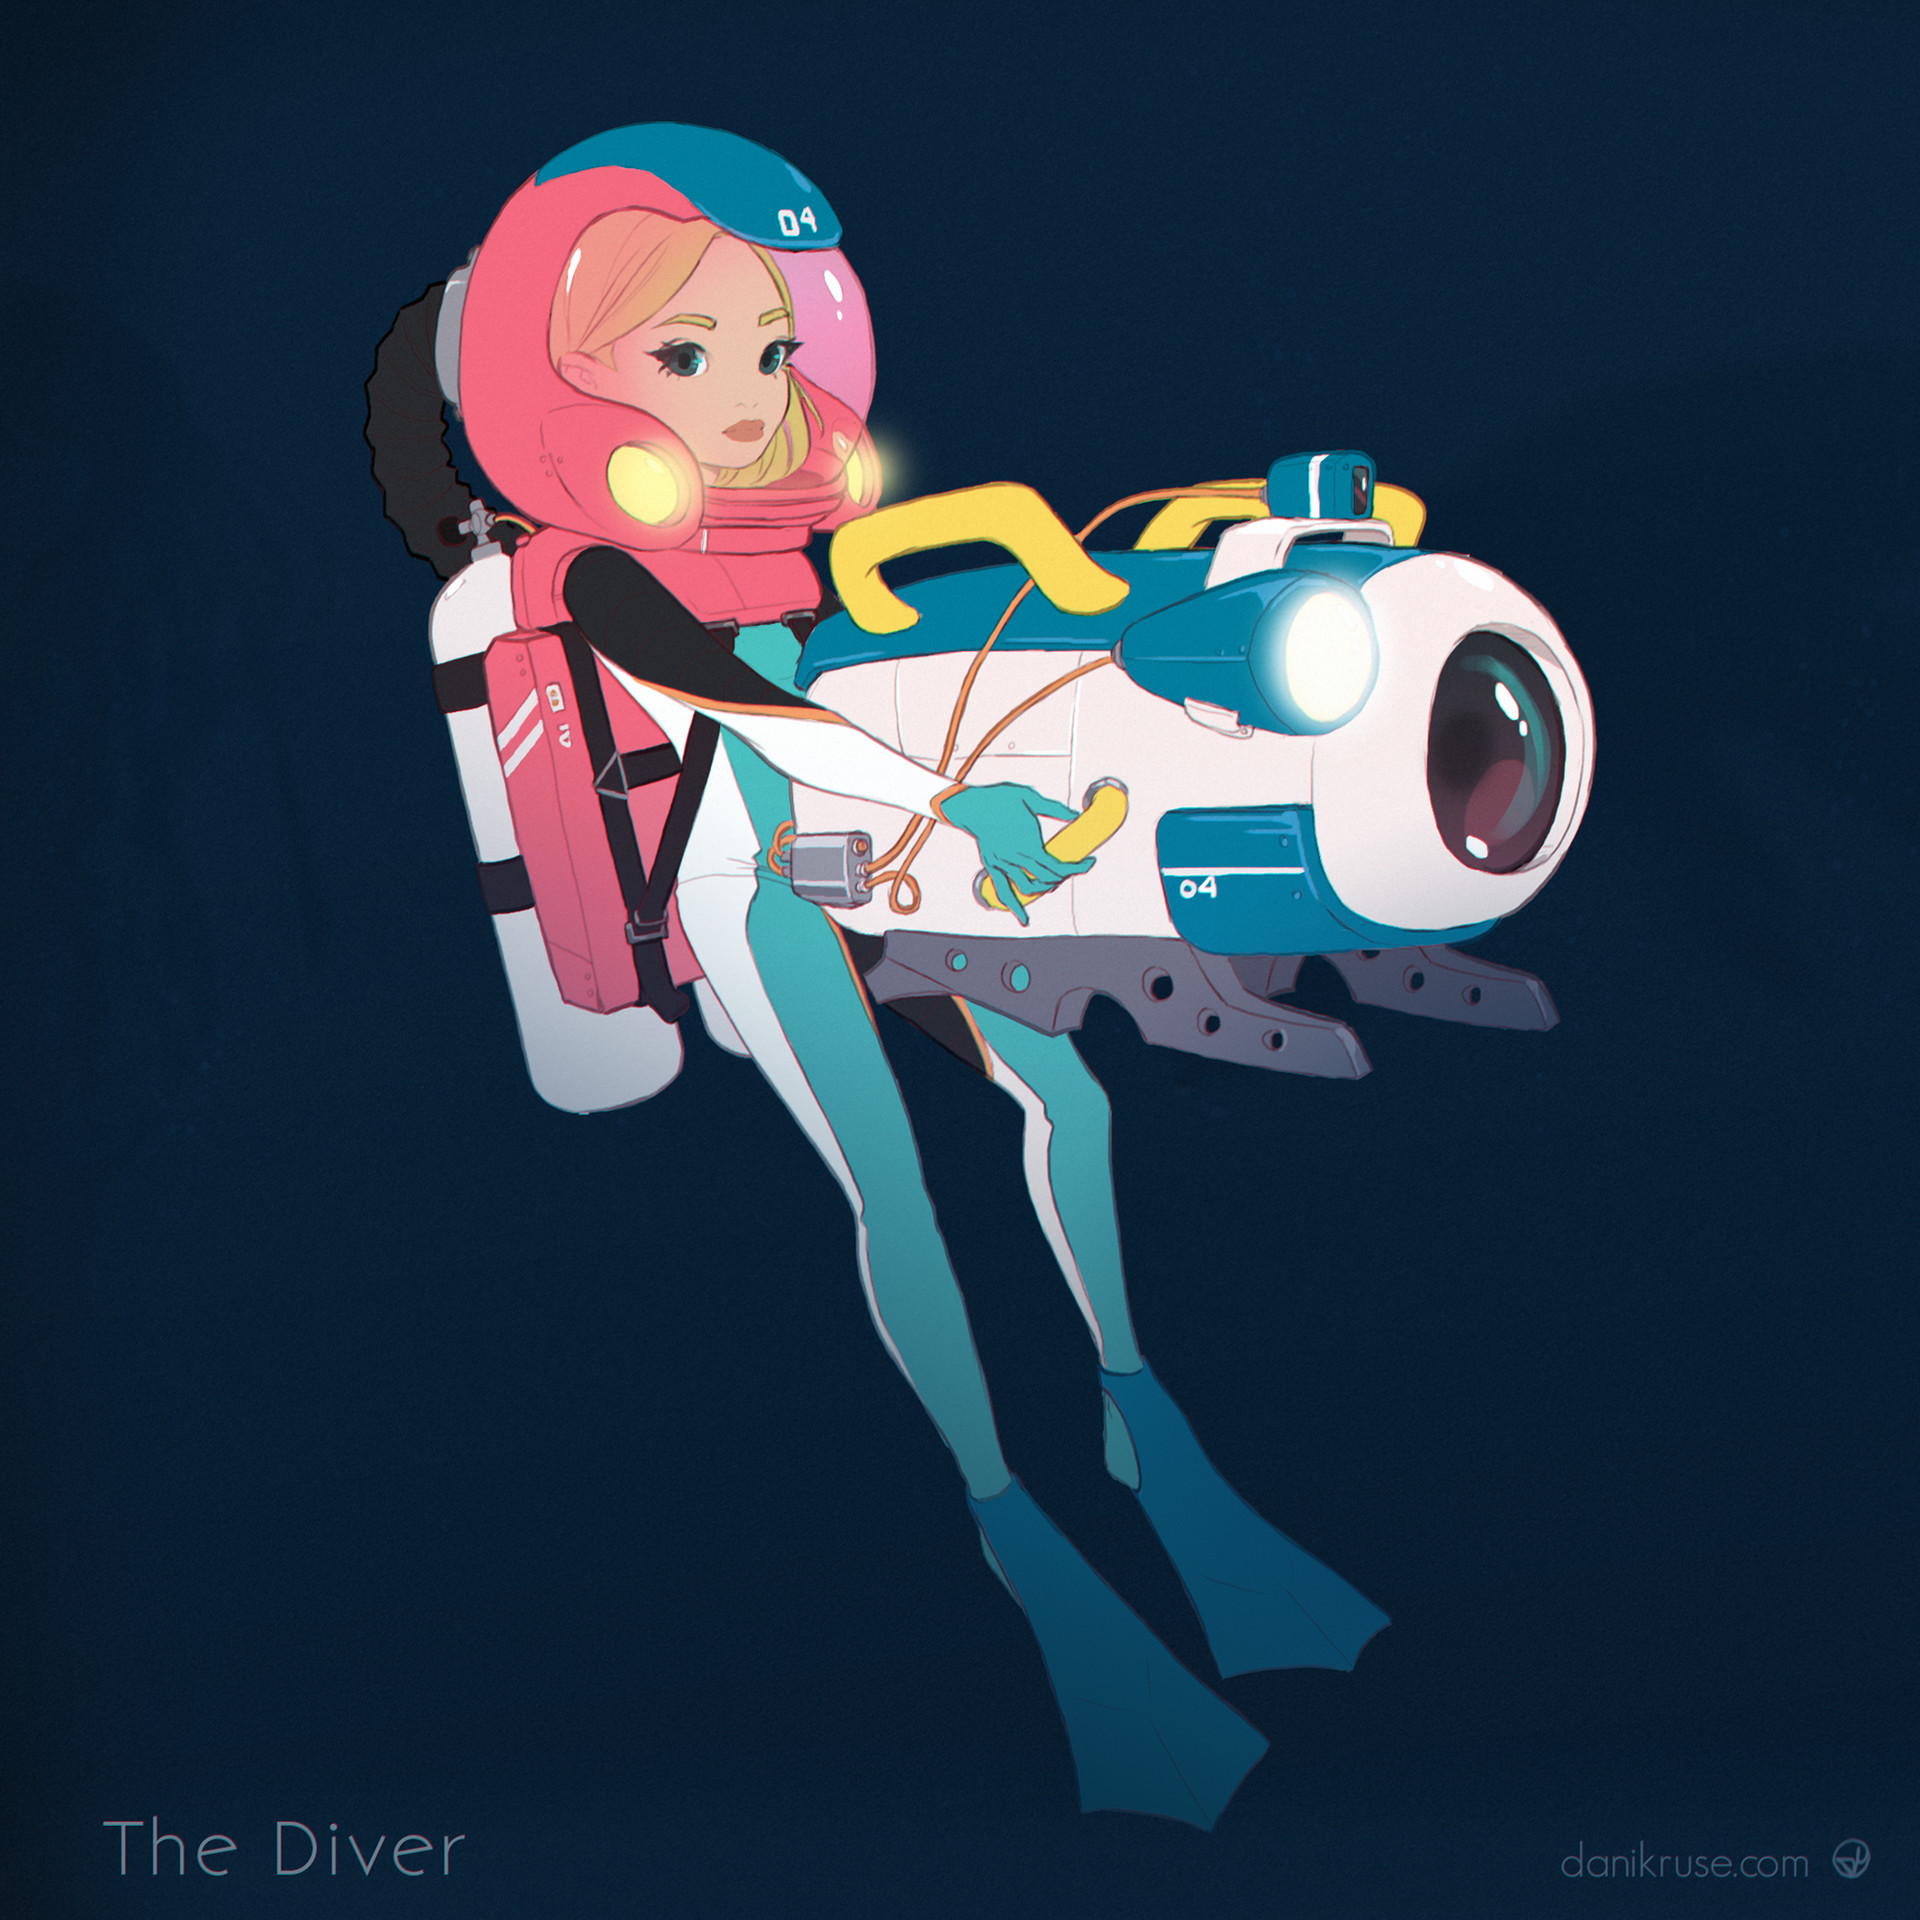 Dani kruse btw the diver